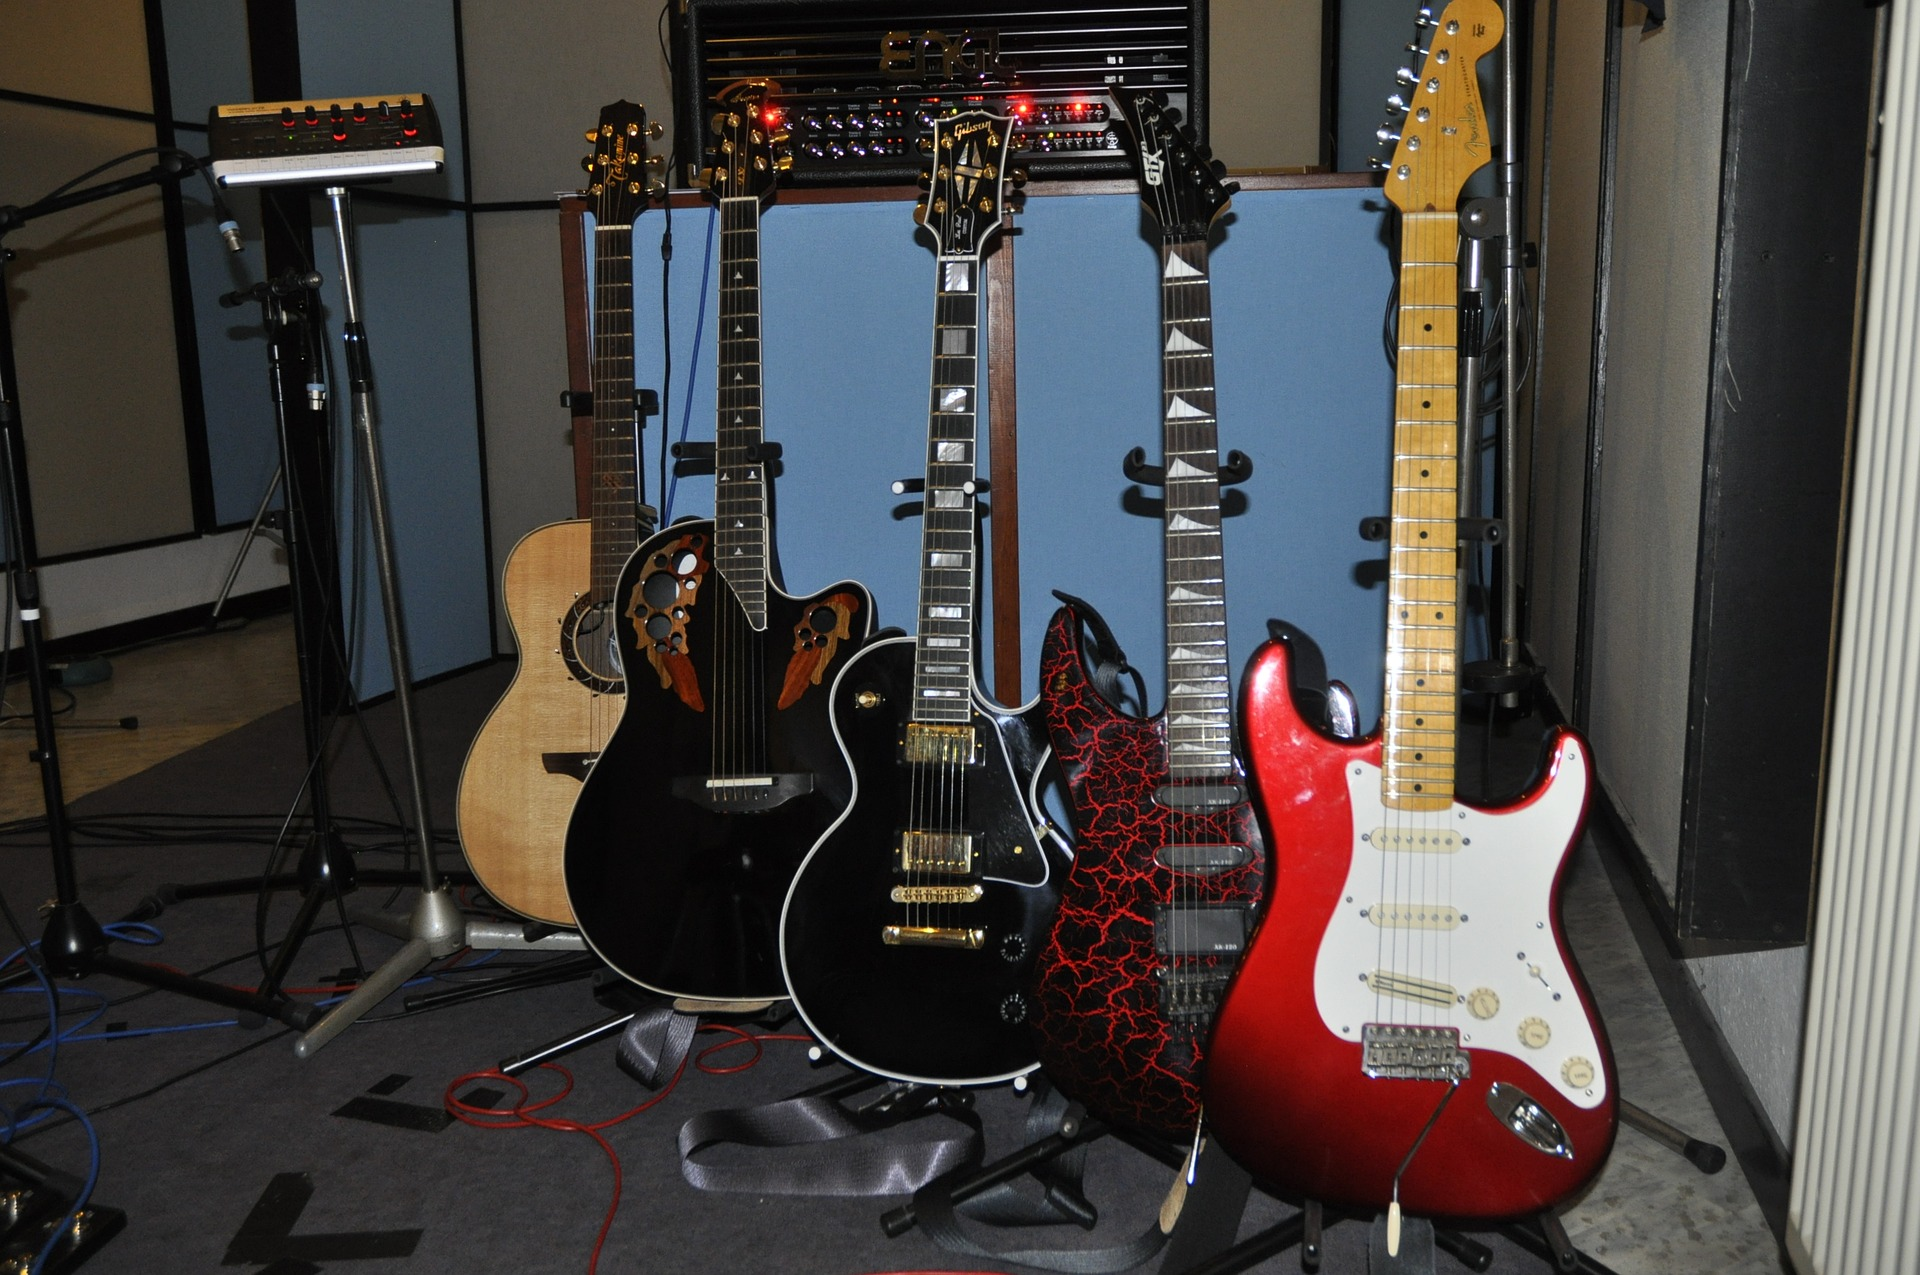 Image of guitars and guitars aligned and supported on floor stands